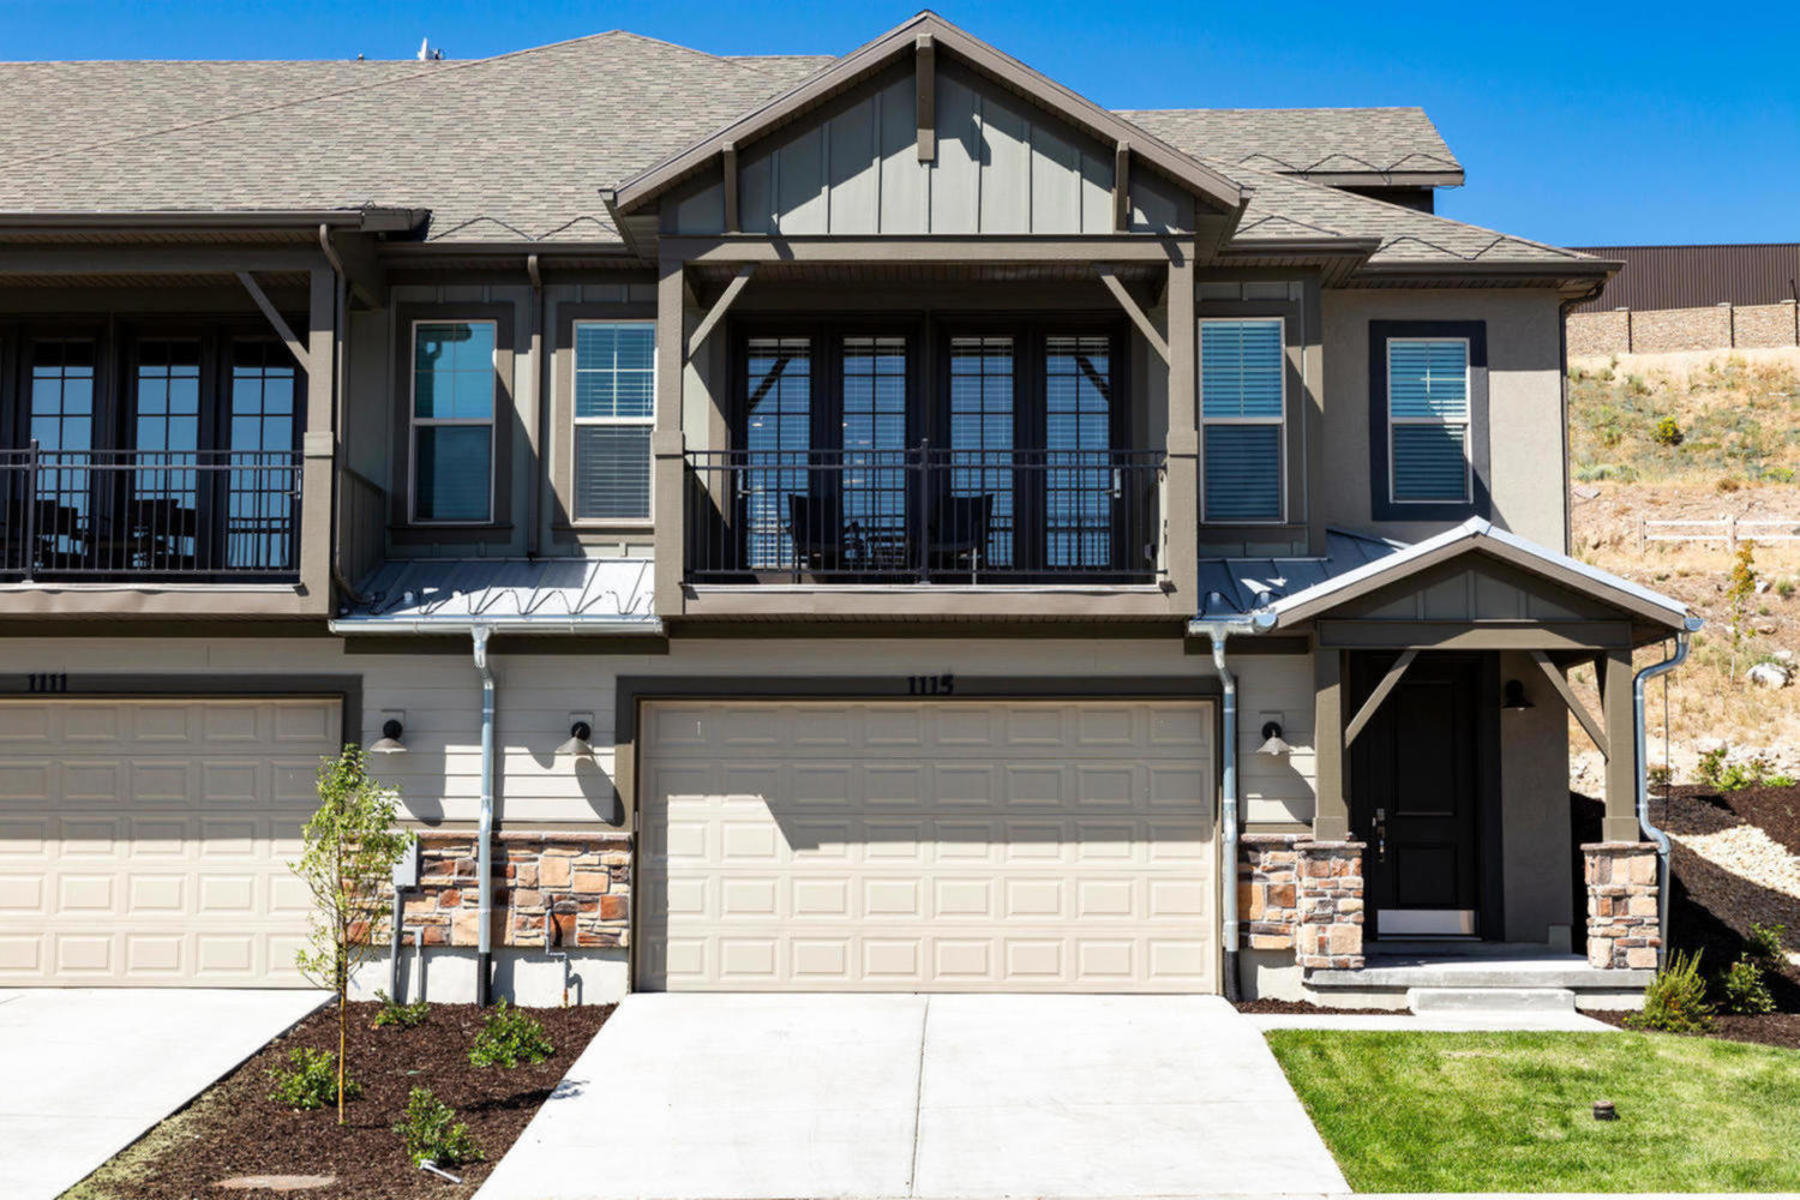 townhouses for Active at Brand New Beautiful Townhome Just 6 Minutes to Historic Park City 1095 W Wasatch Springs Rd #N2 Heber, Utah 84032 United States